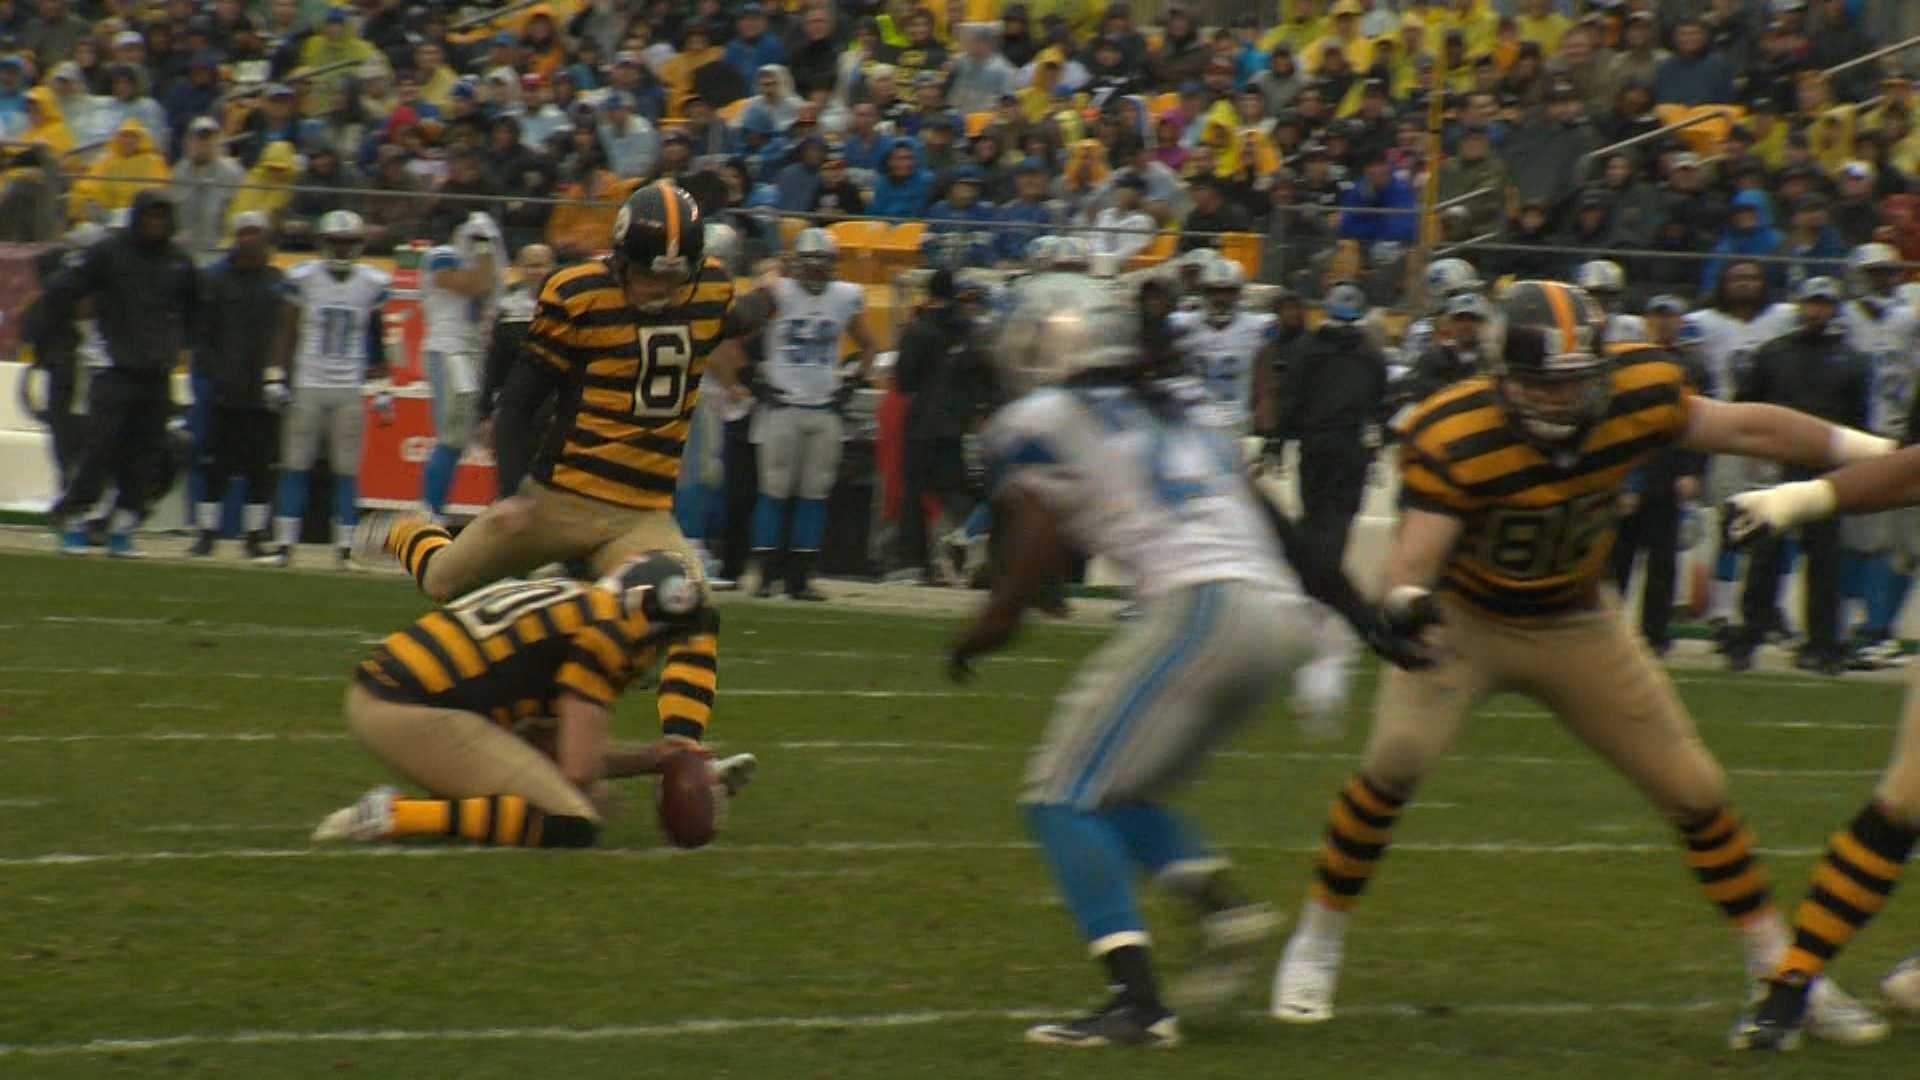 Shaun Suisham boots one through the uprights